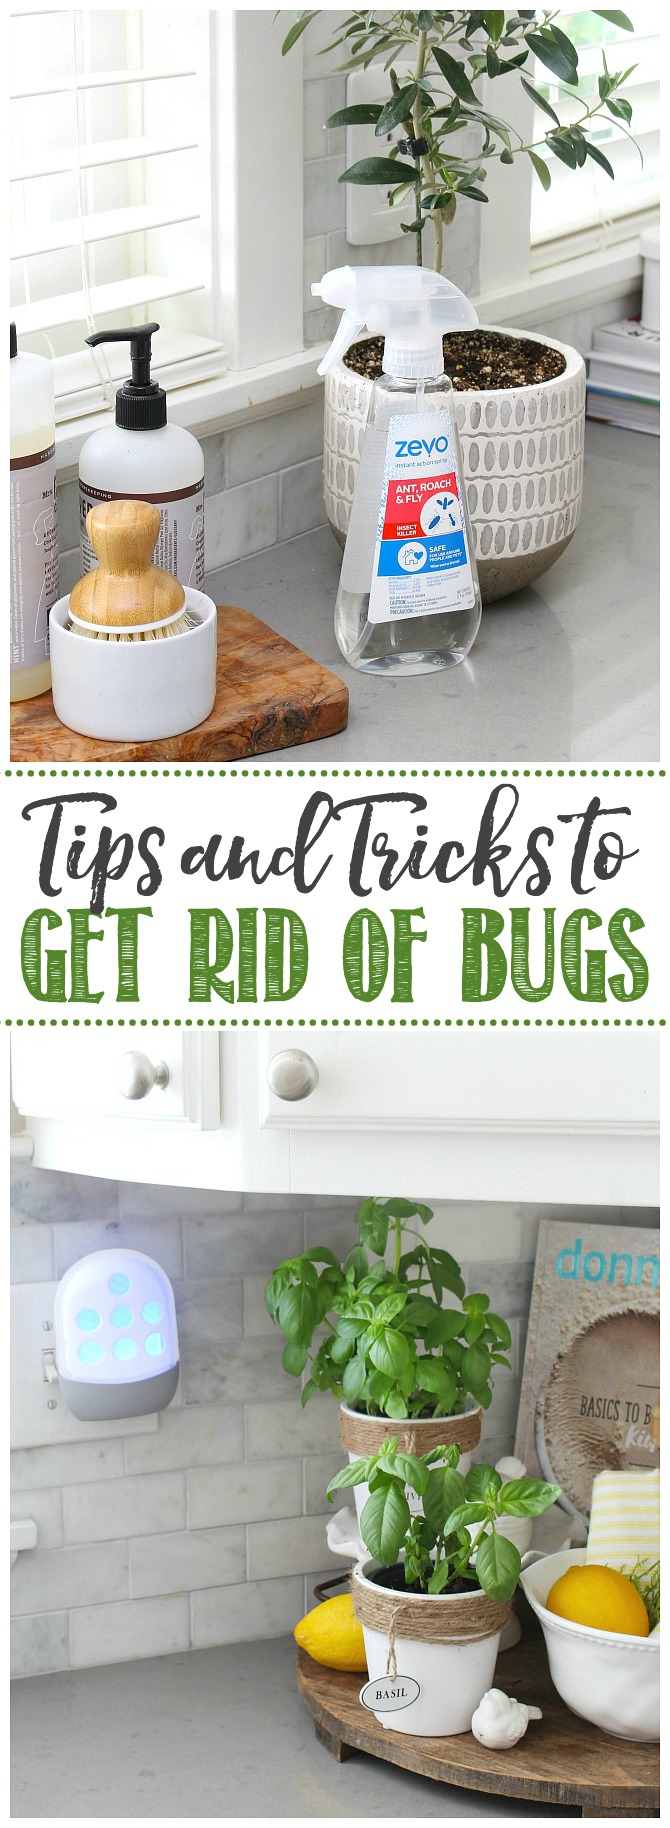 How To Safely Get Rid Of Bugs Indoors Clean And Scentsible